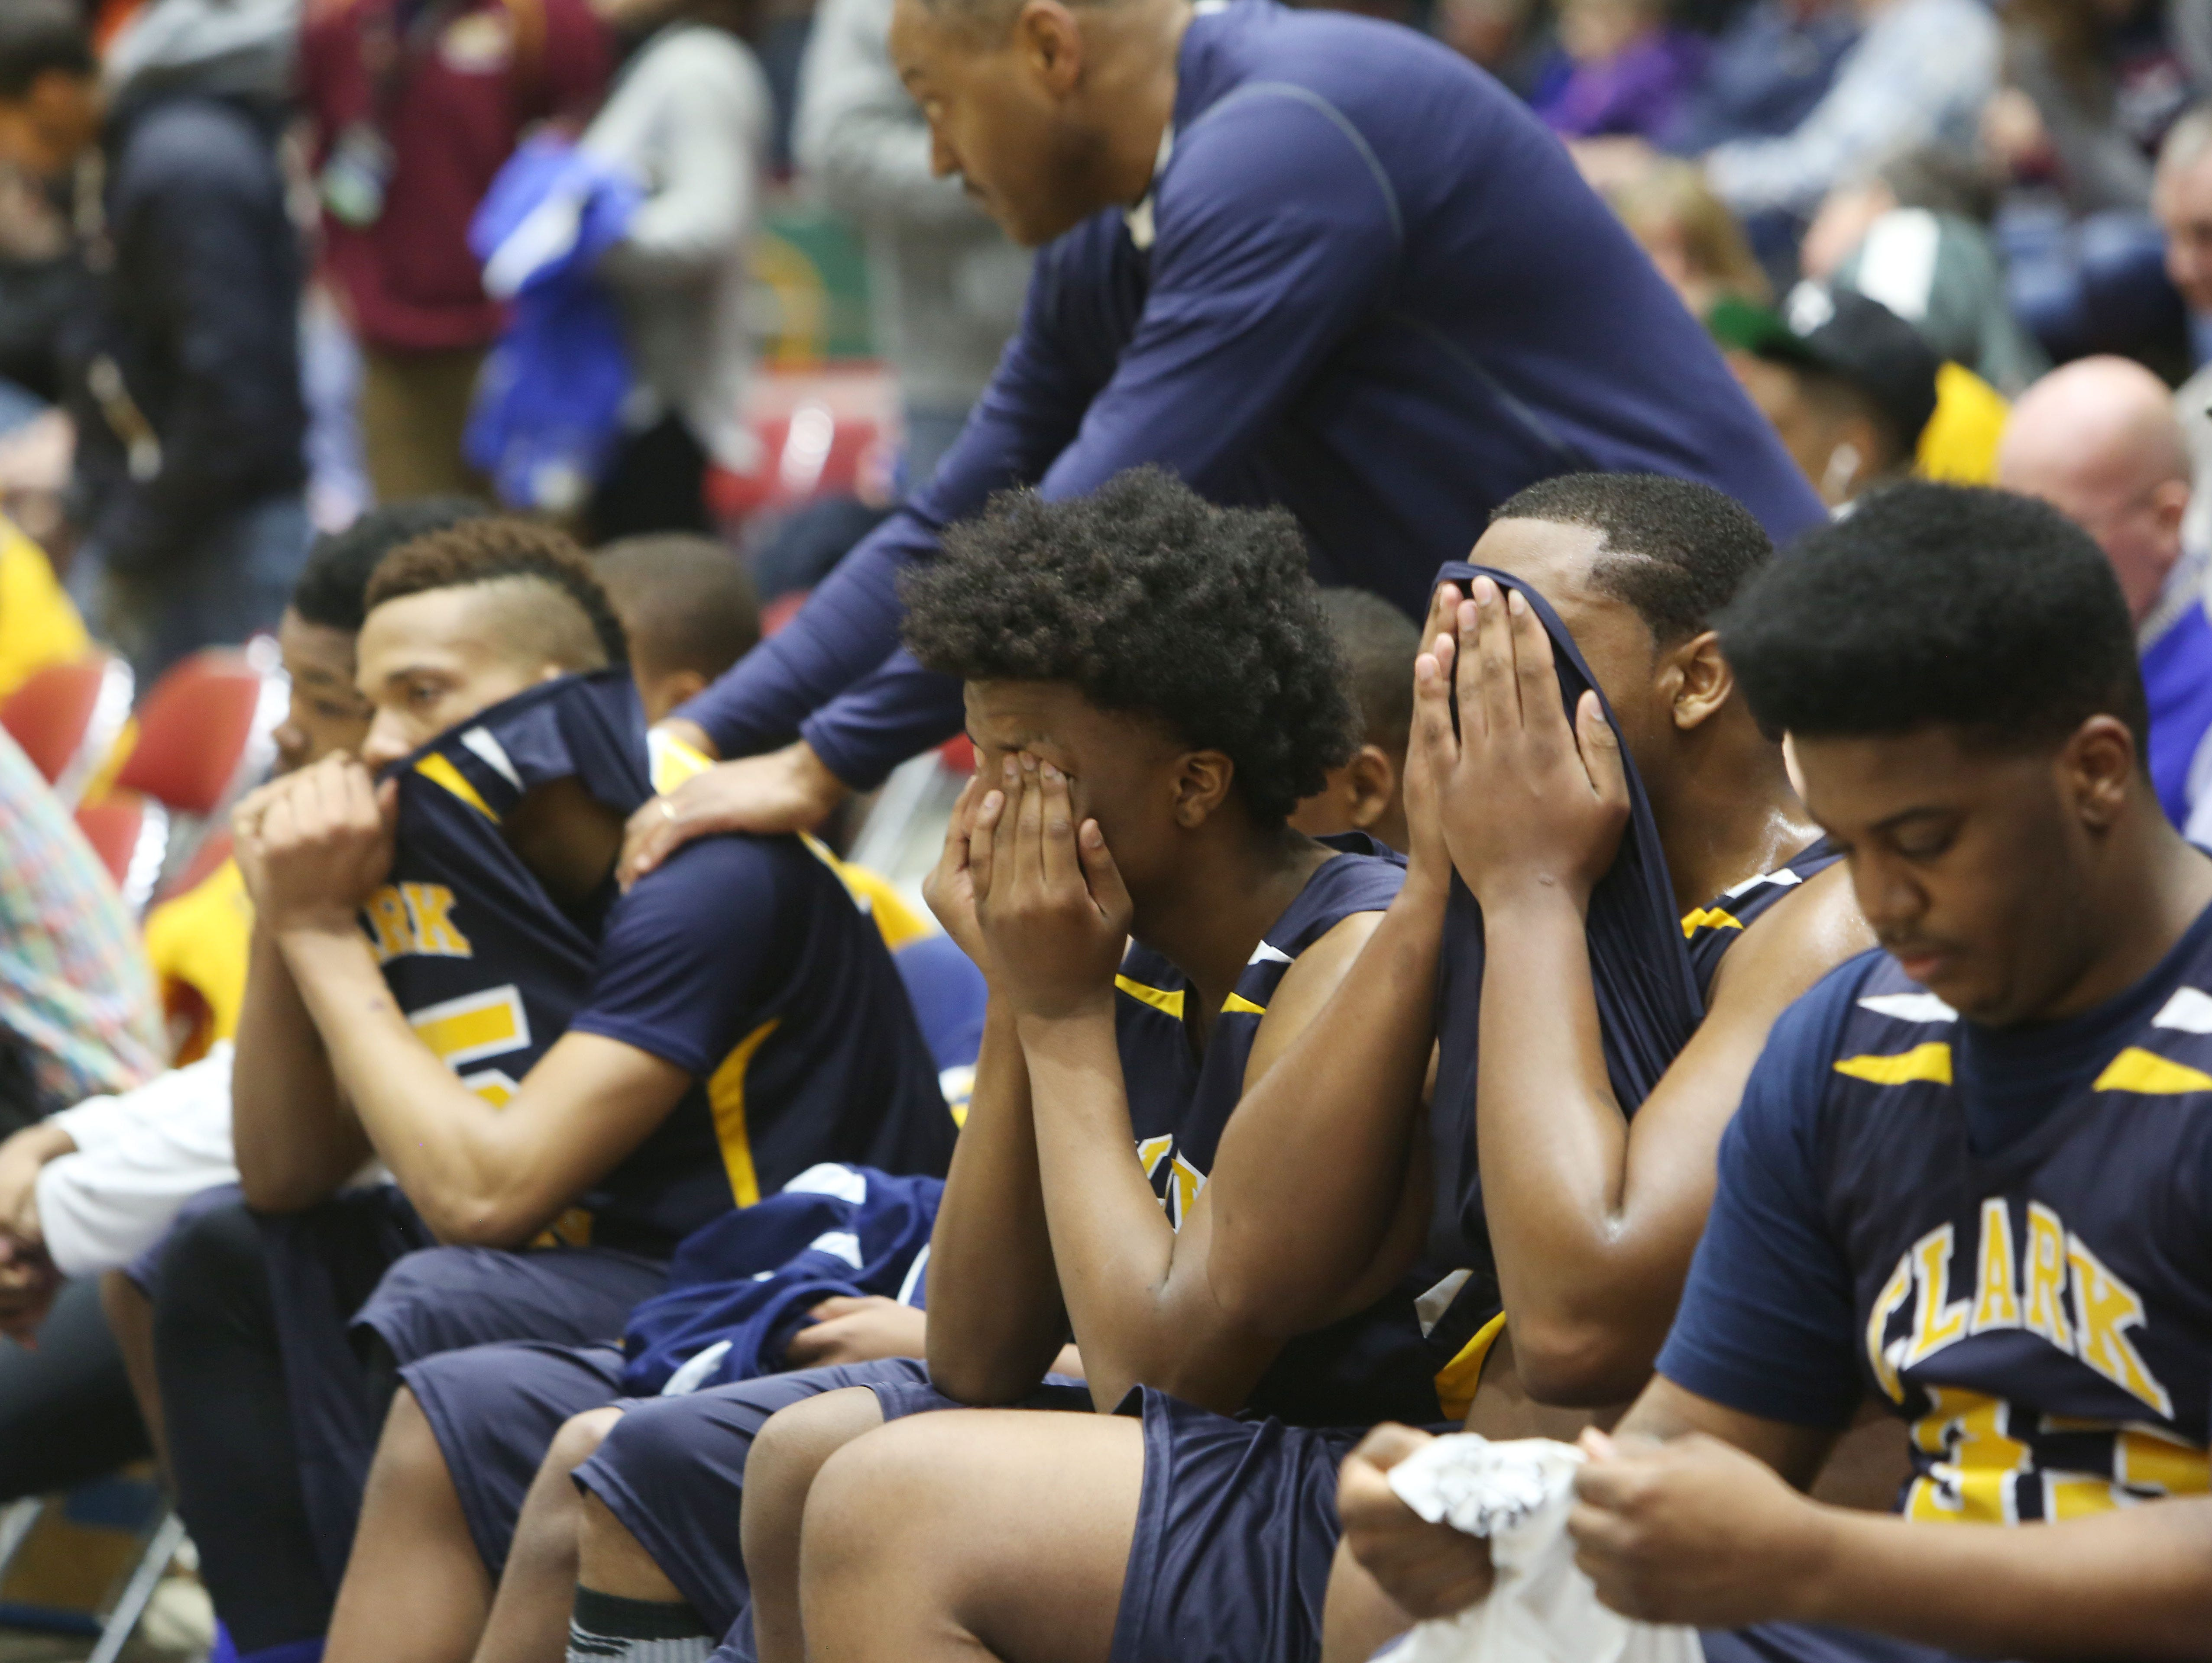 Clark Academy players watch from the bench as their season comes to an end against Oriskany in the boys Class D semifinal at the Glens Falls Civic Center March 11, 2016. Oriskany won the game 59-40.